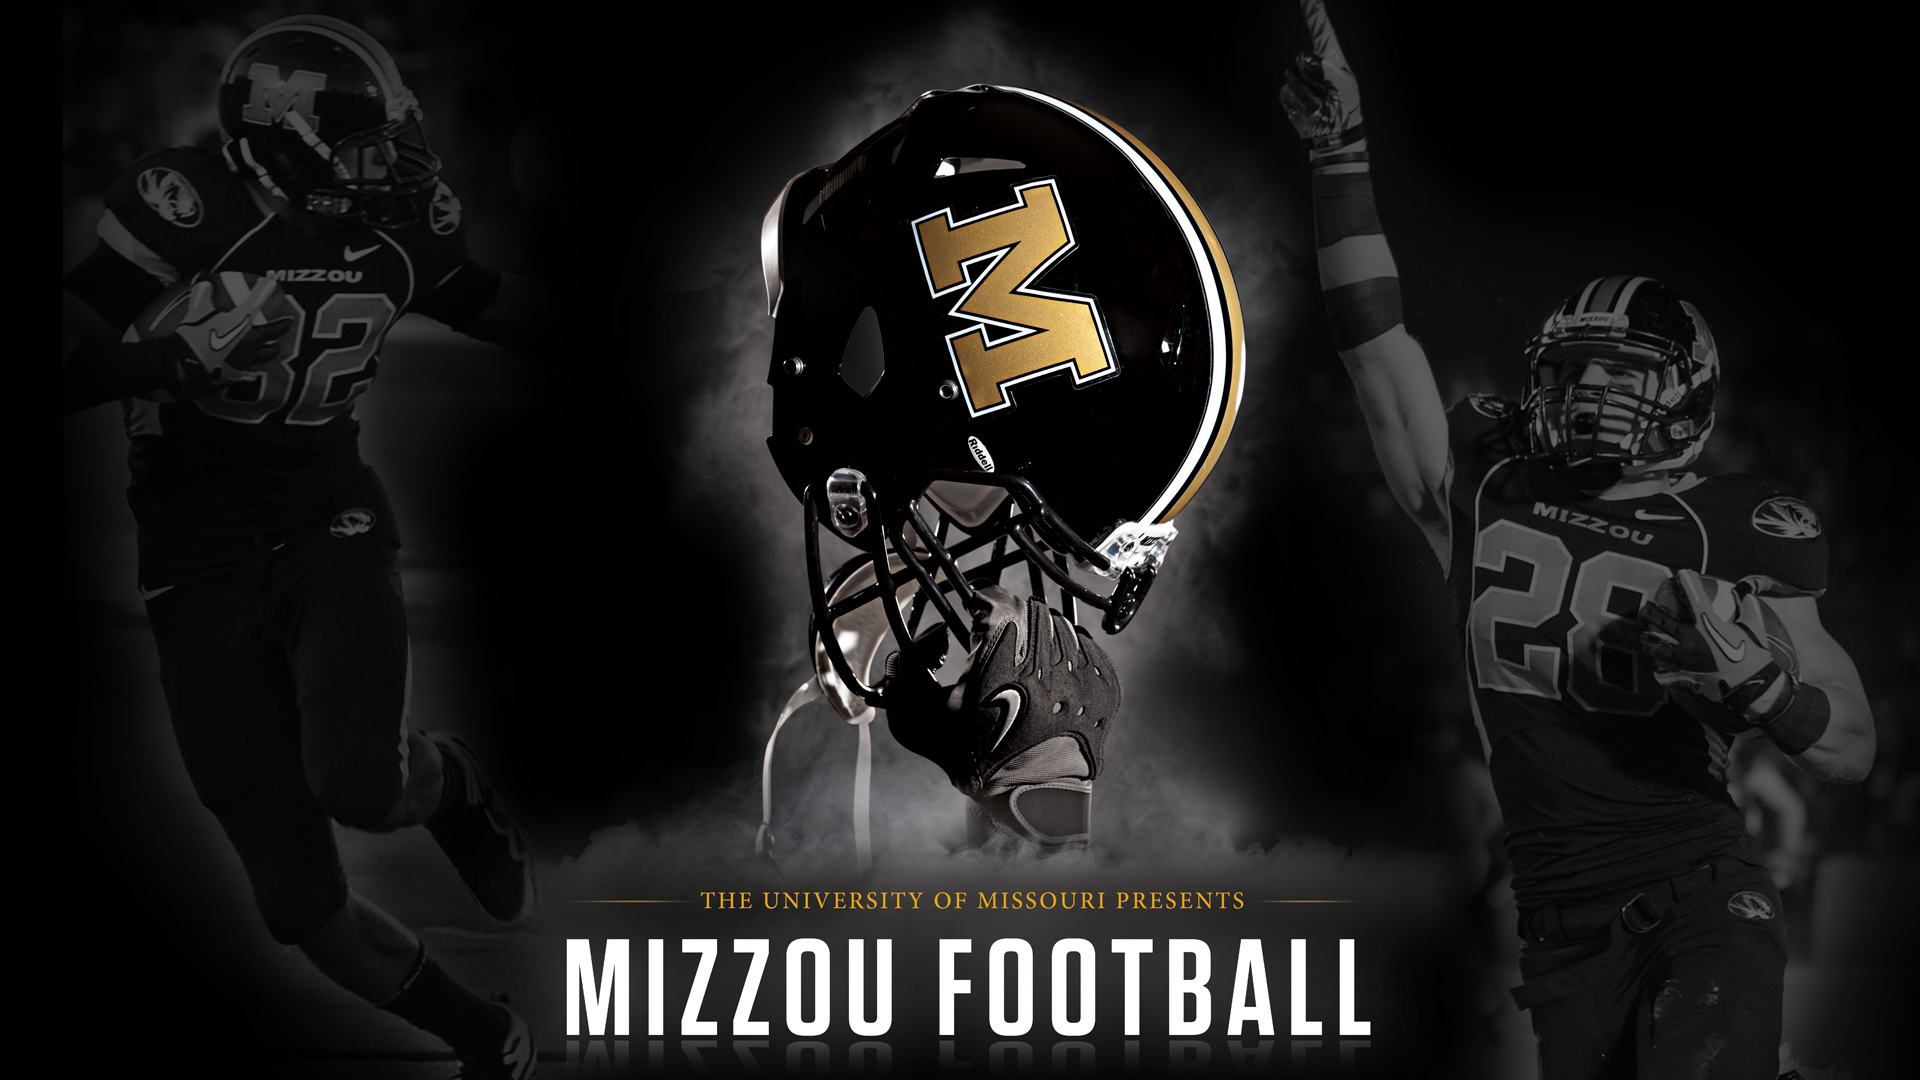 Related Pictures missouri tigers logo iphone wallpaper hd 1920x1080